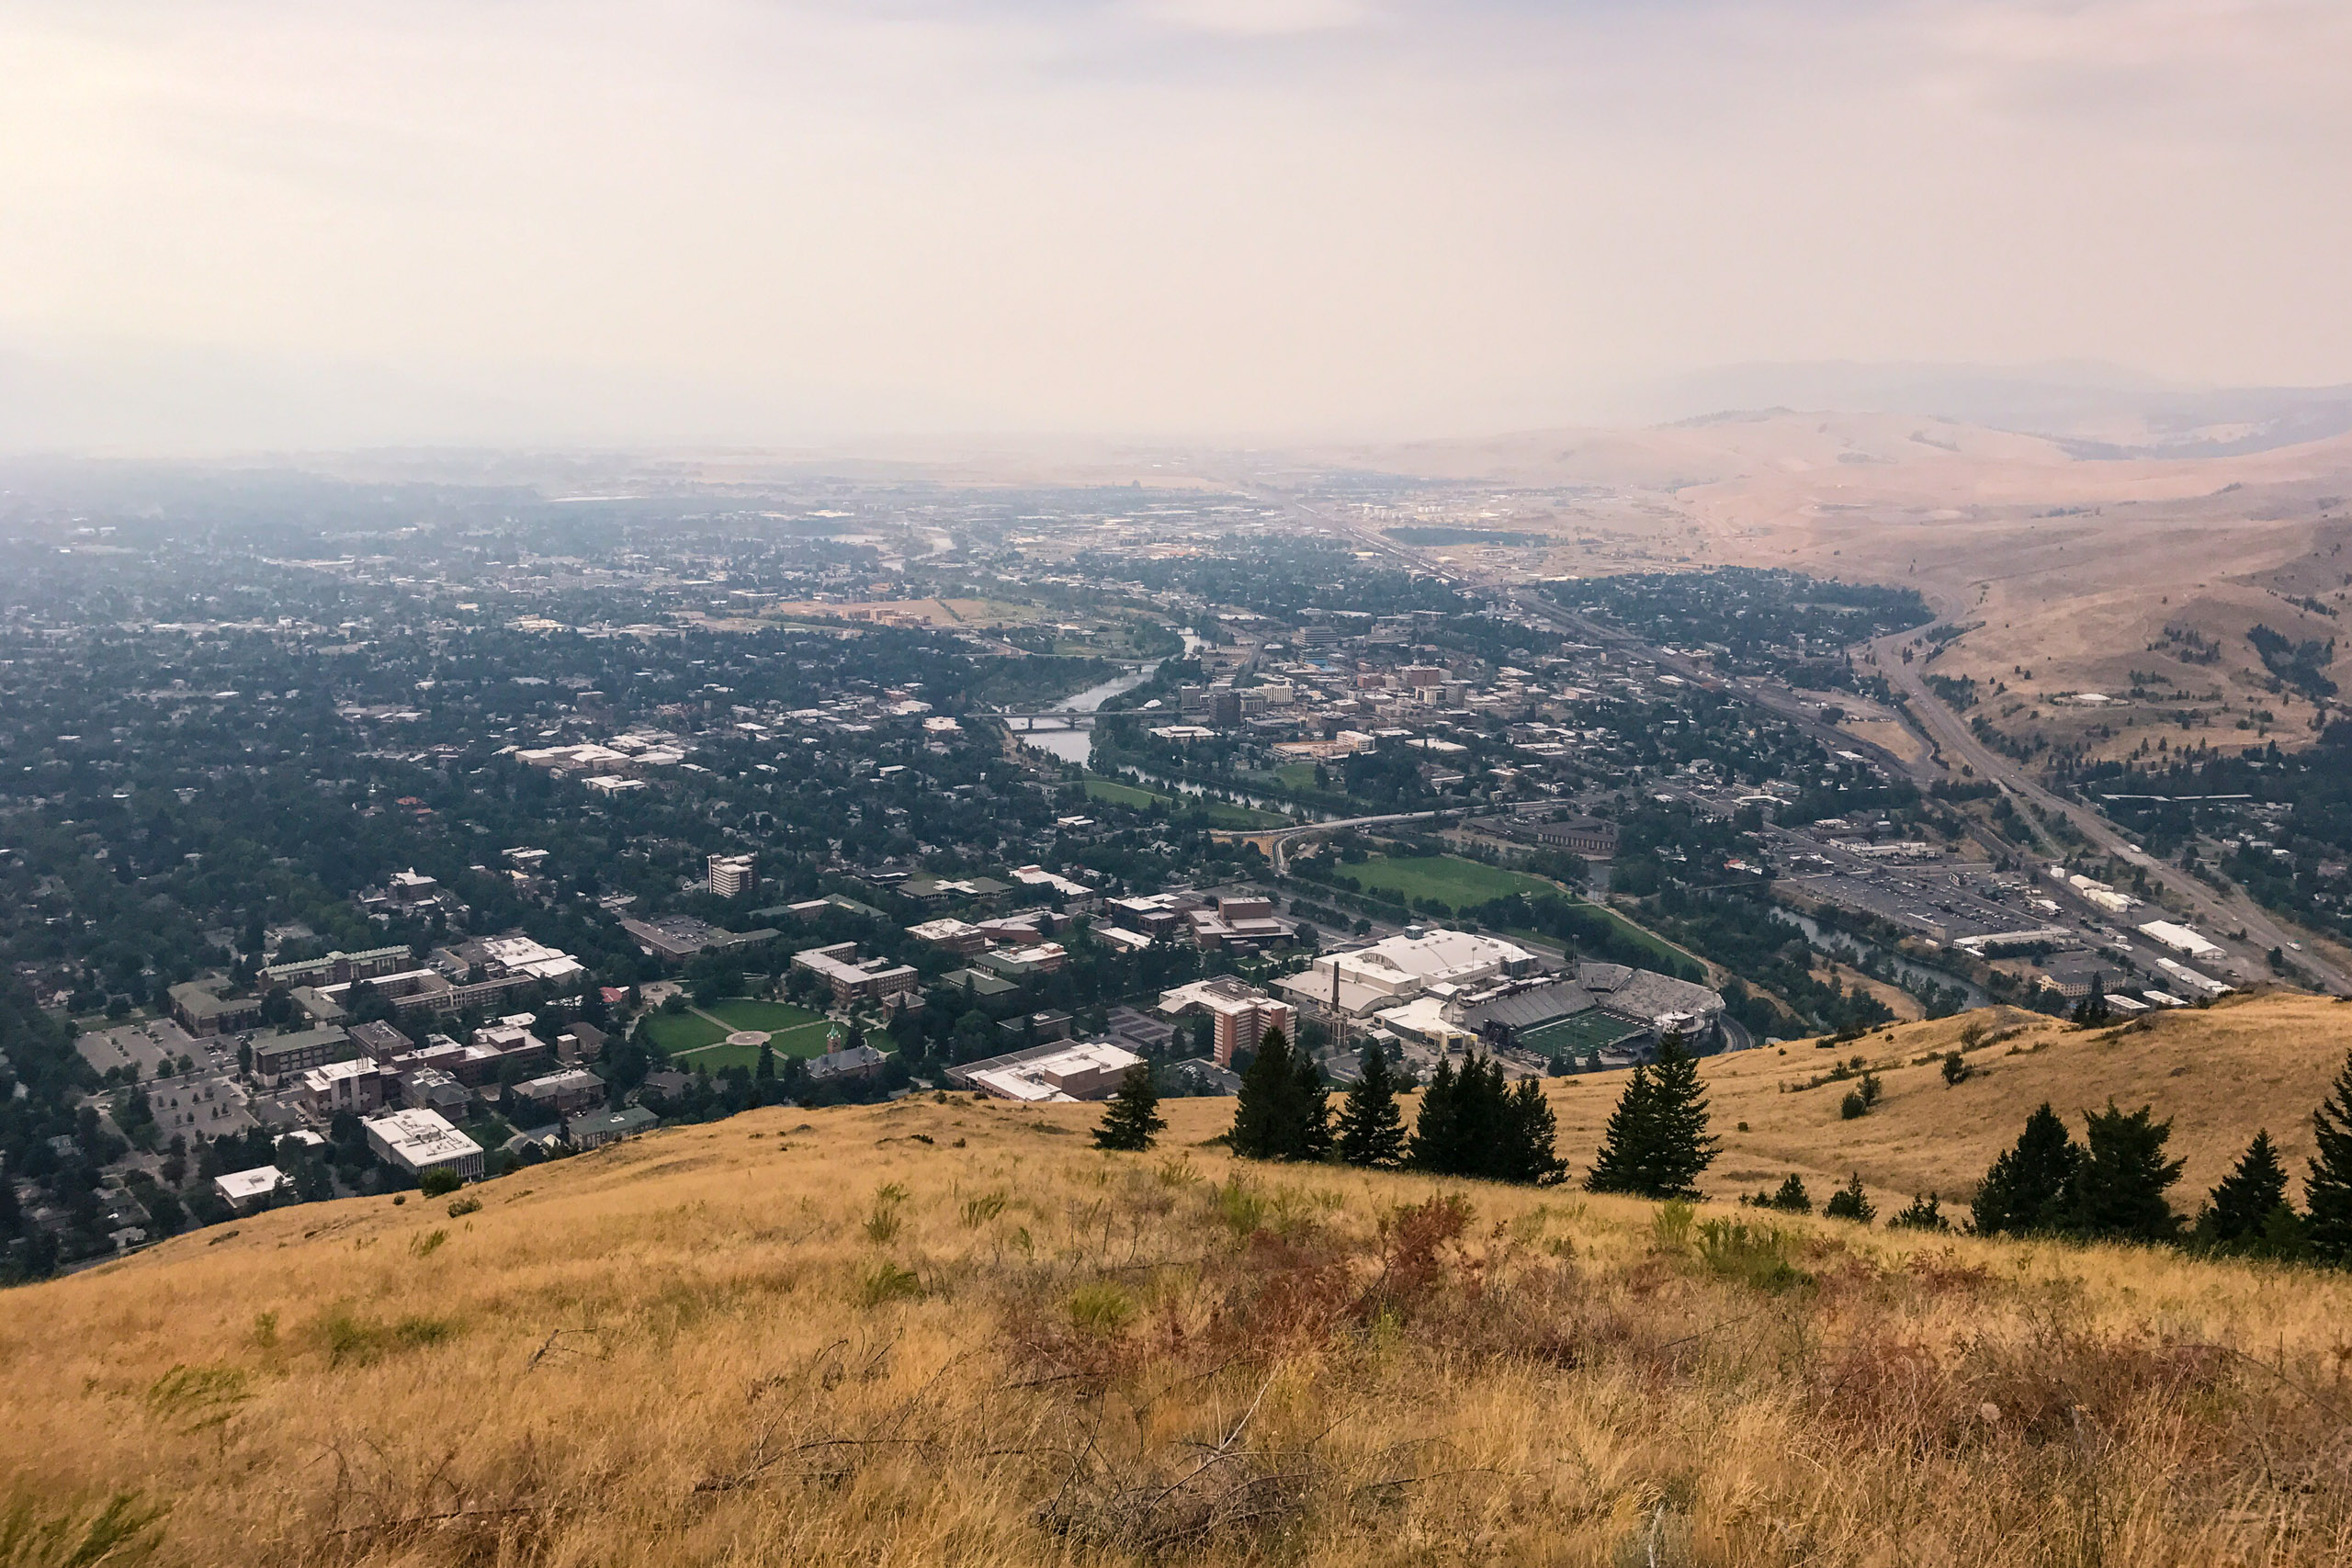 University of Montana campus and Missoula